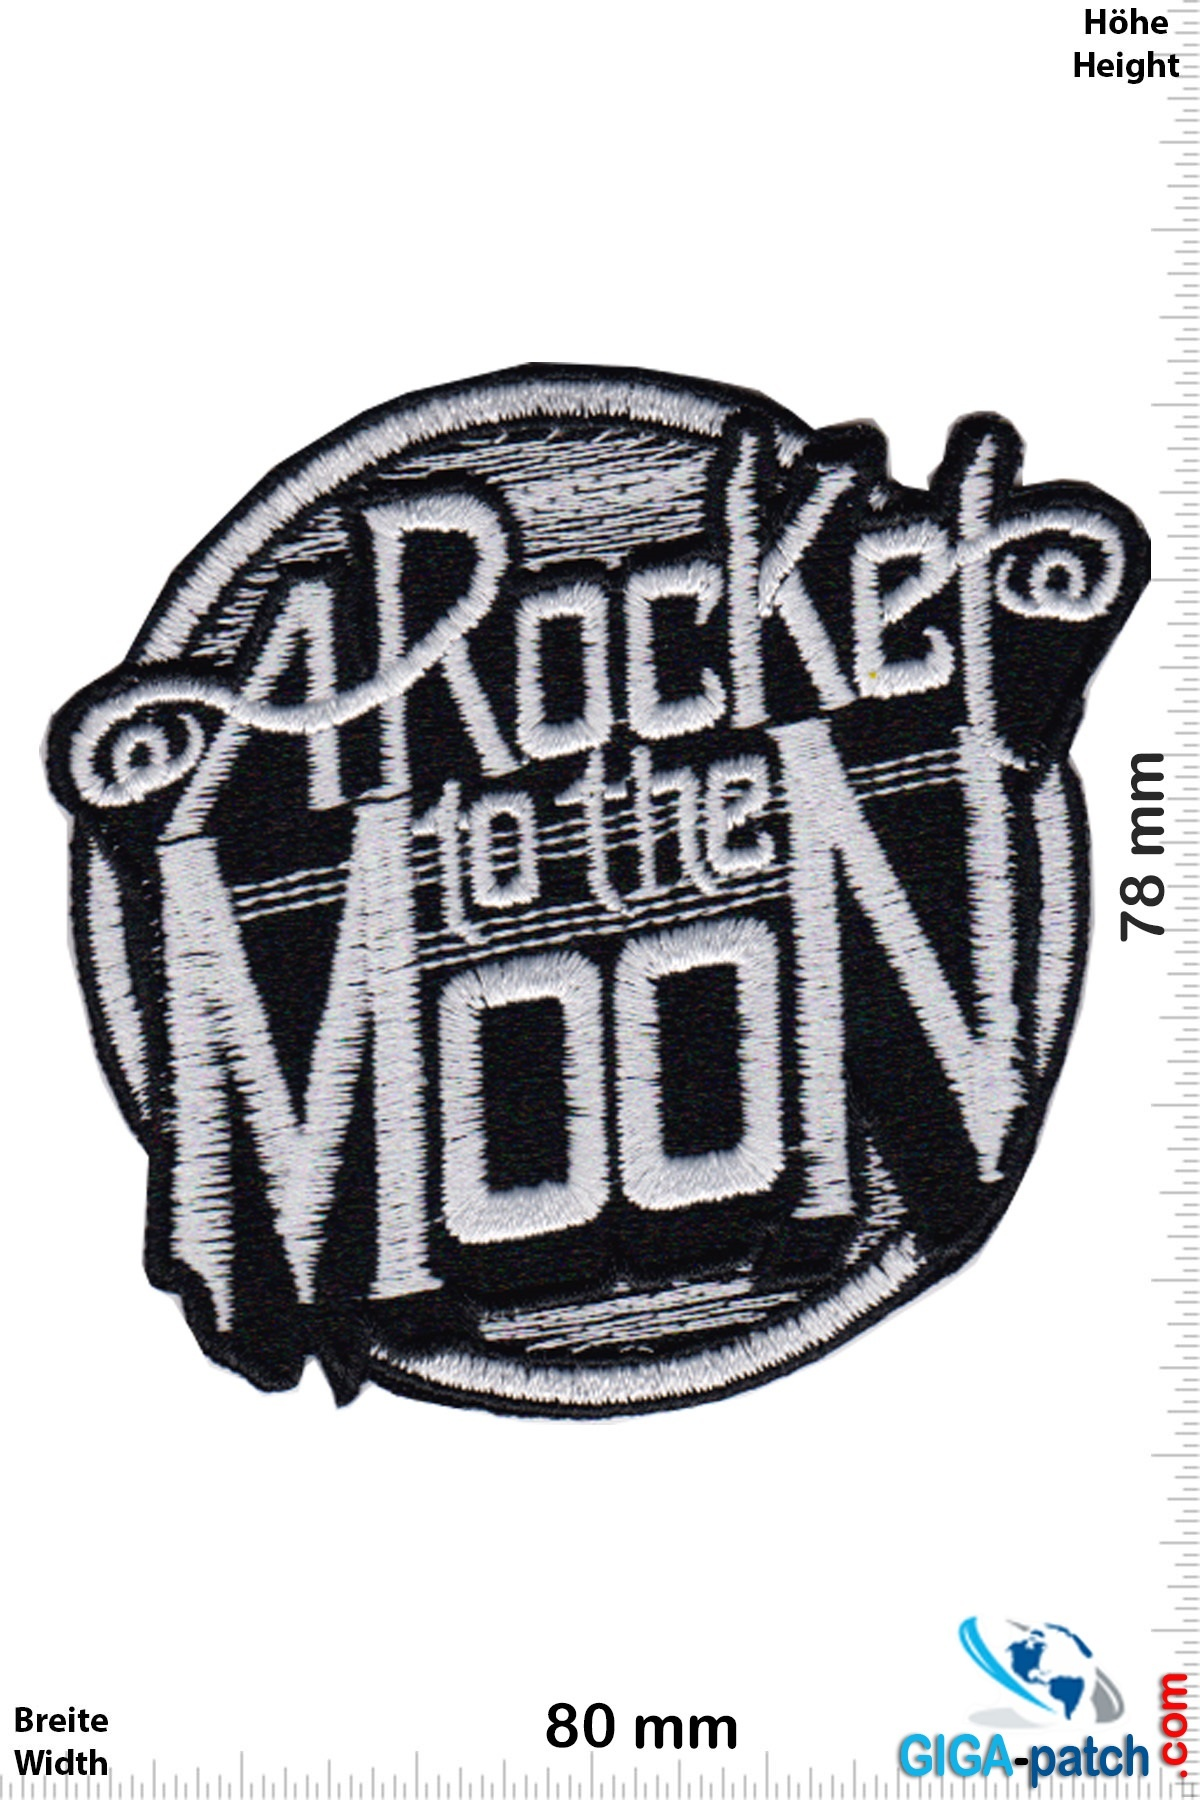 A Rocket to the Moon - Rockband